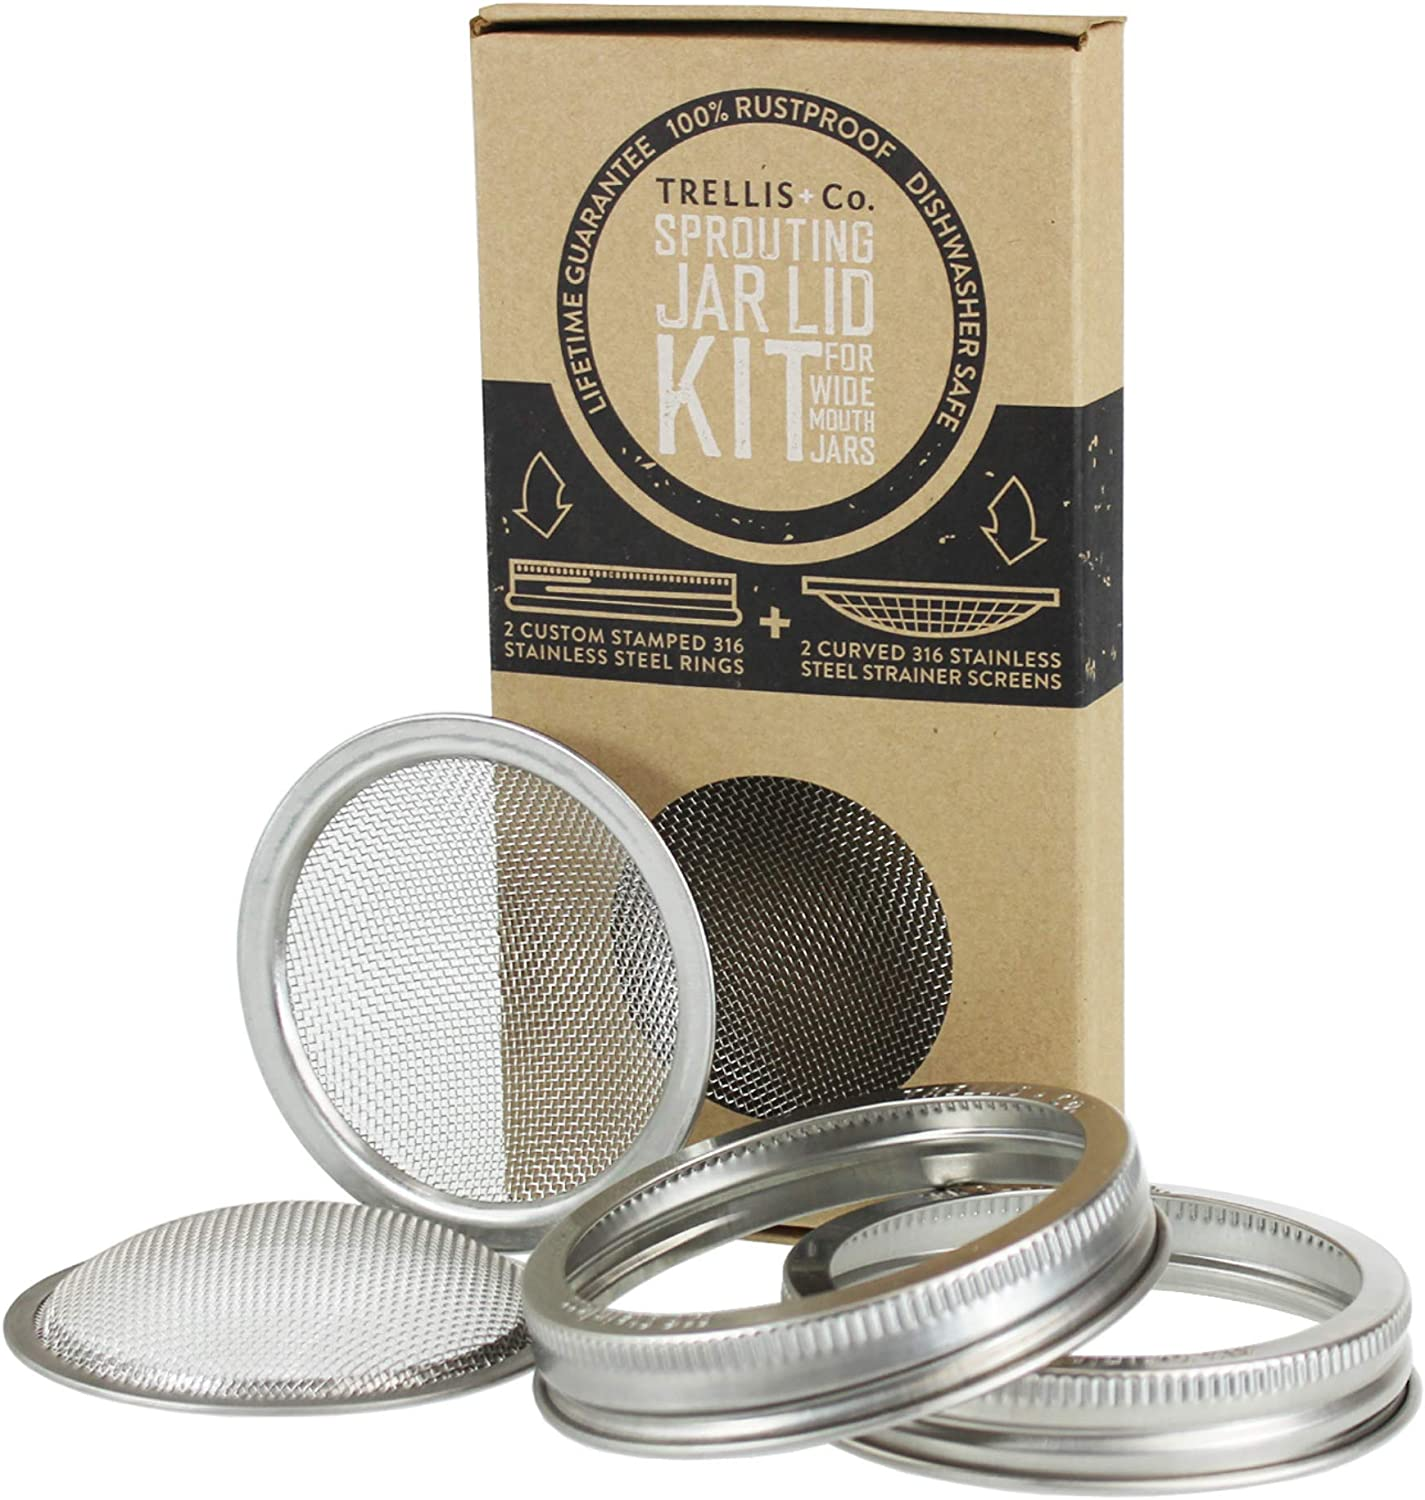 Trellis Co. Stainless Steel Sprouting Kit, 2 Pack Rust Proof 316 Stainless, Curved Mesh, Fits Most Wide Mouth Mason Jars Grow Your Own Organic Sprouts From Seeds, Sprouter